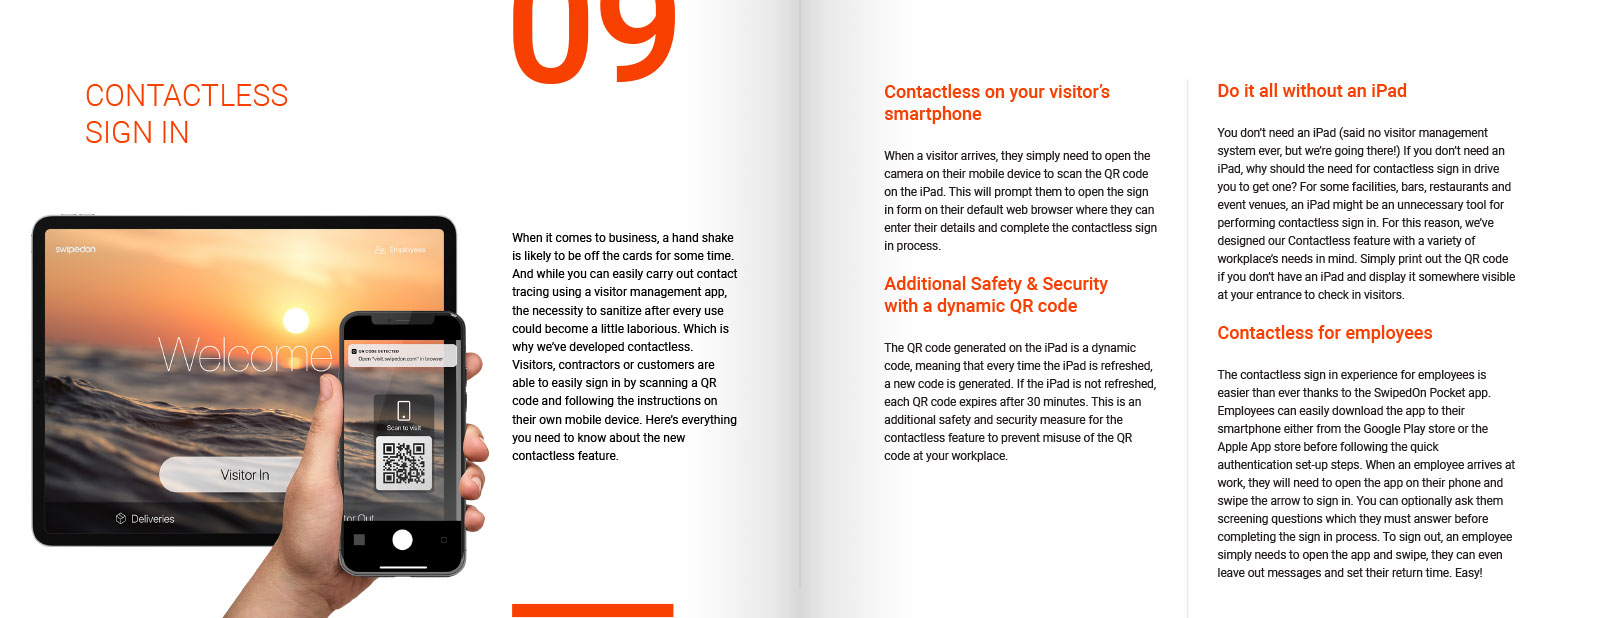 COVID-19; The SwipedOn guide to keeping employees safe at work